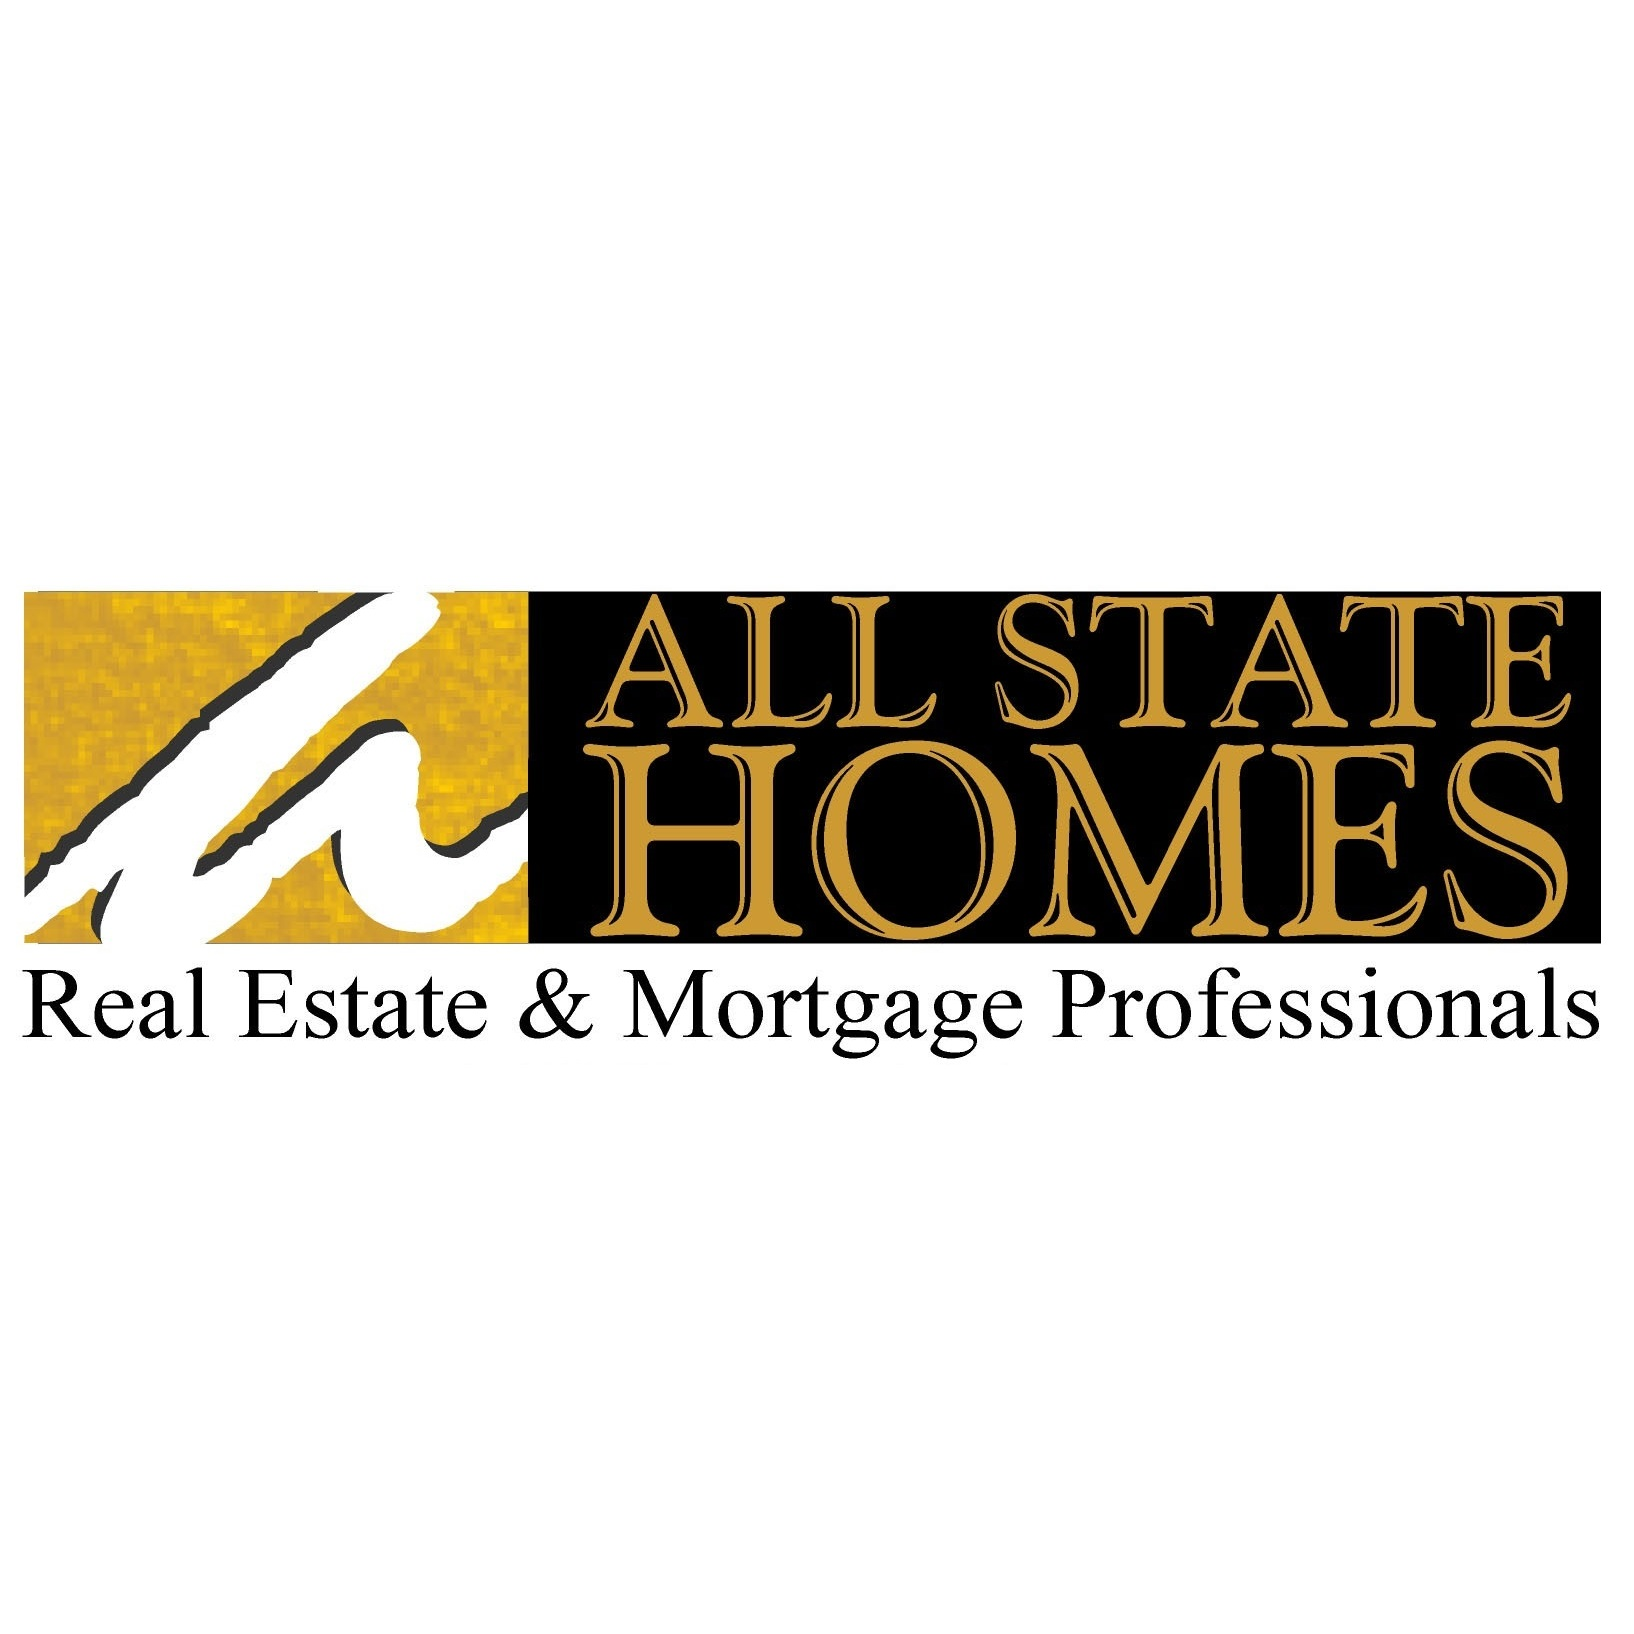 Real Estate Professional : All state homes real estate and mortgage professionals in